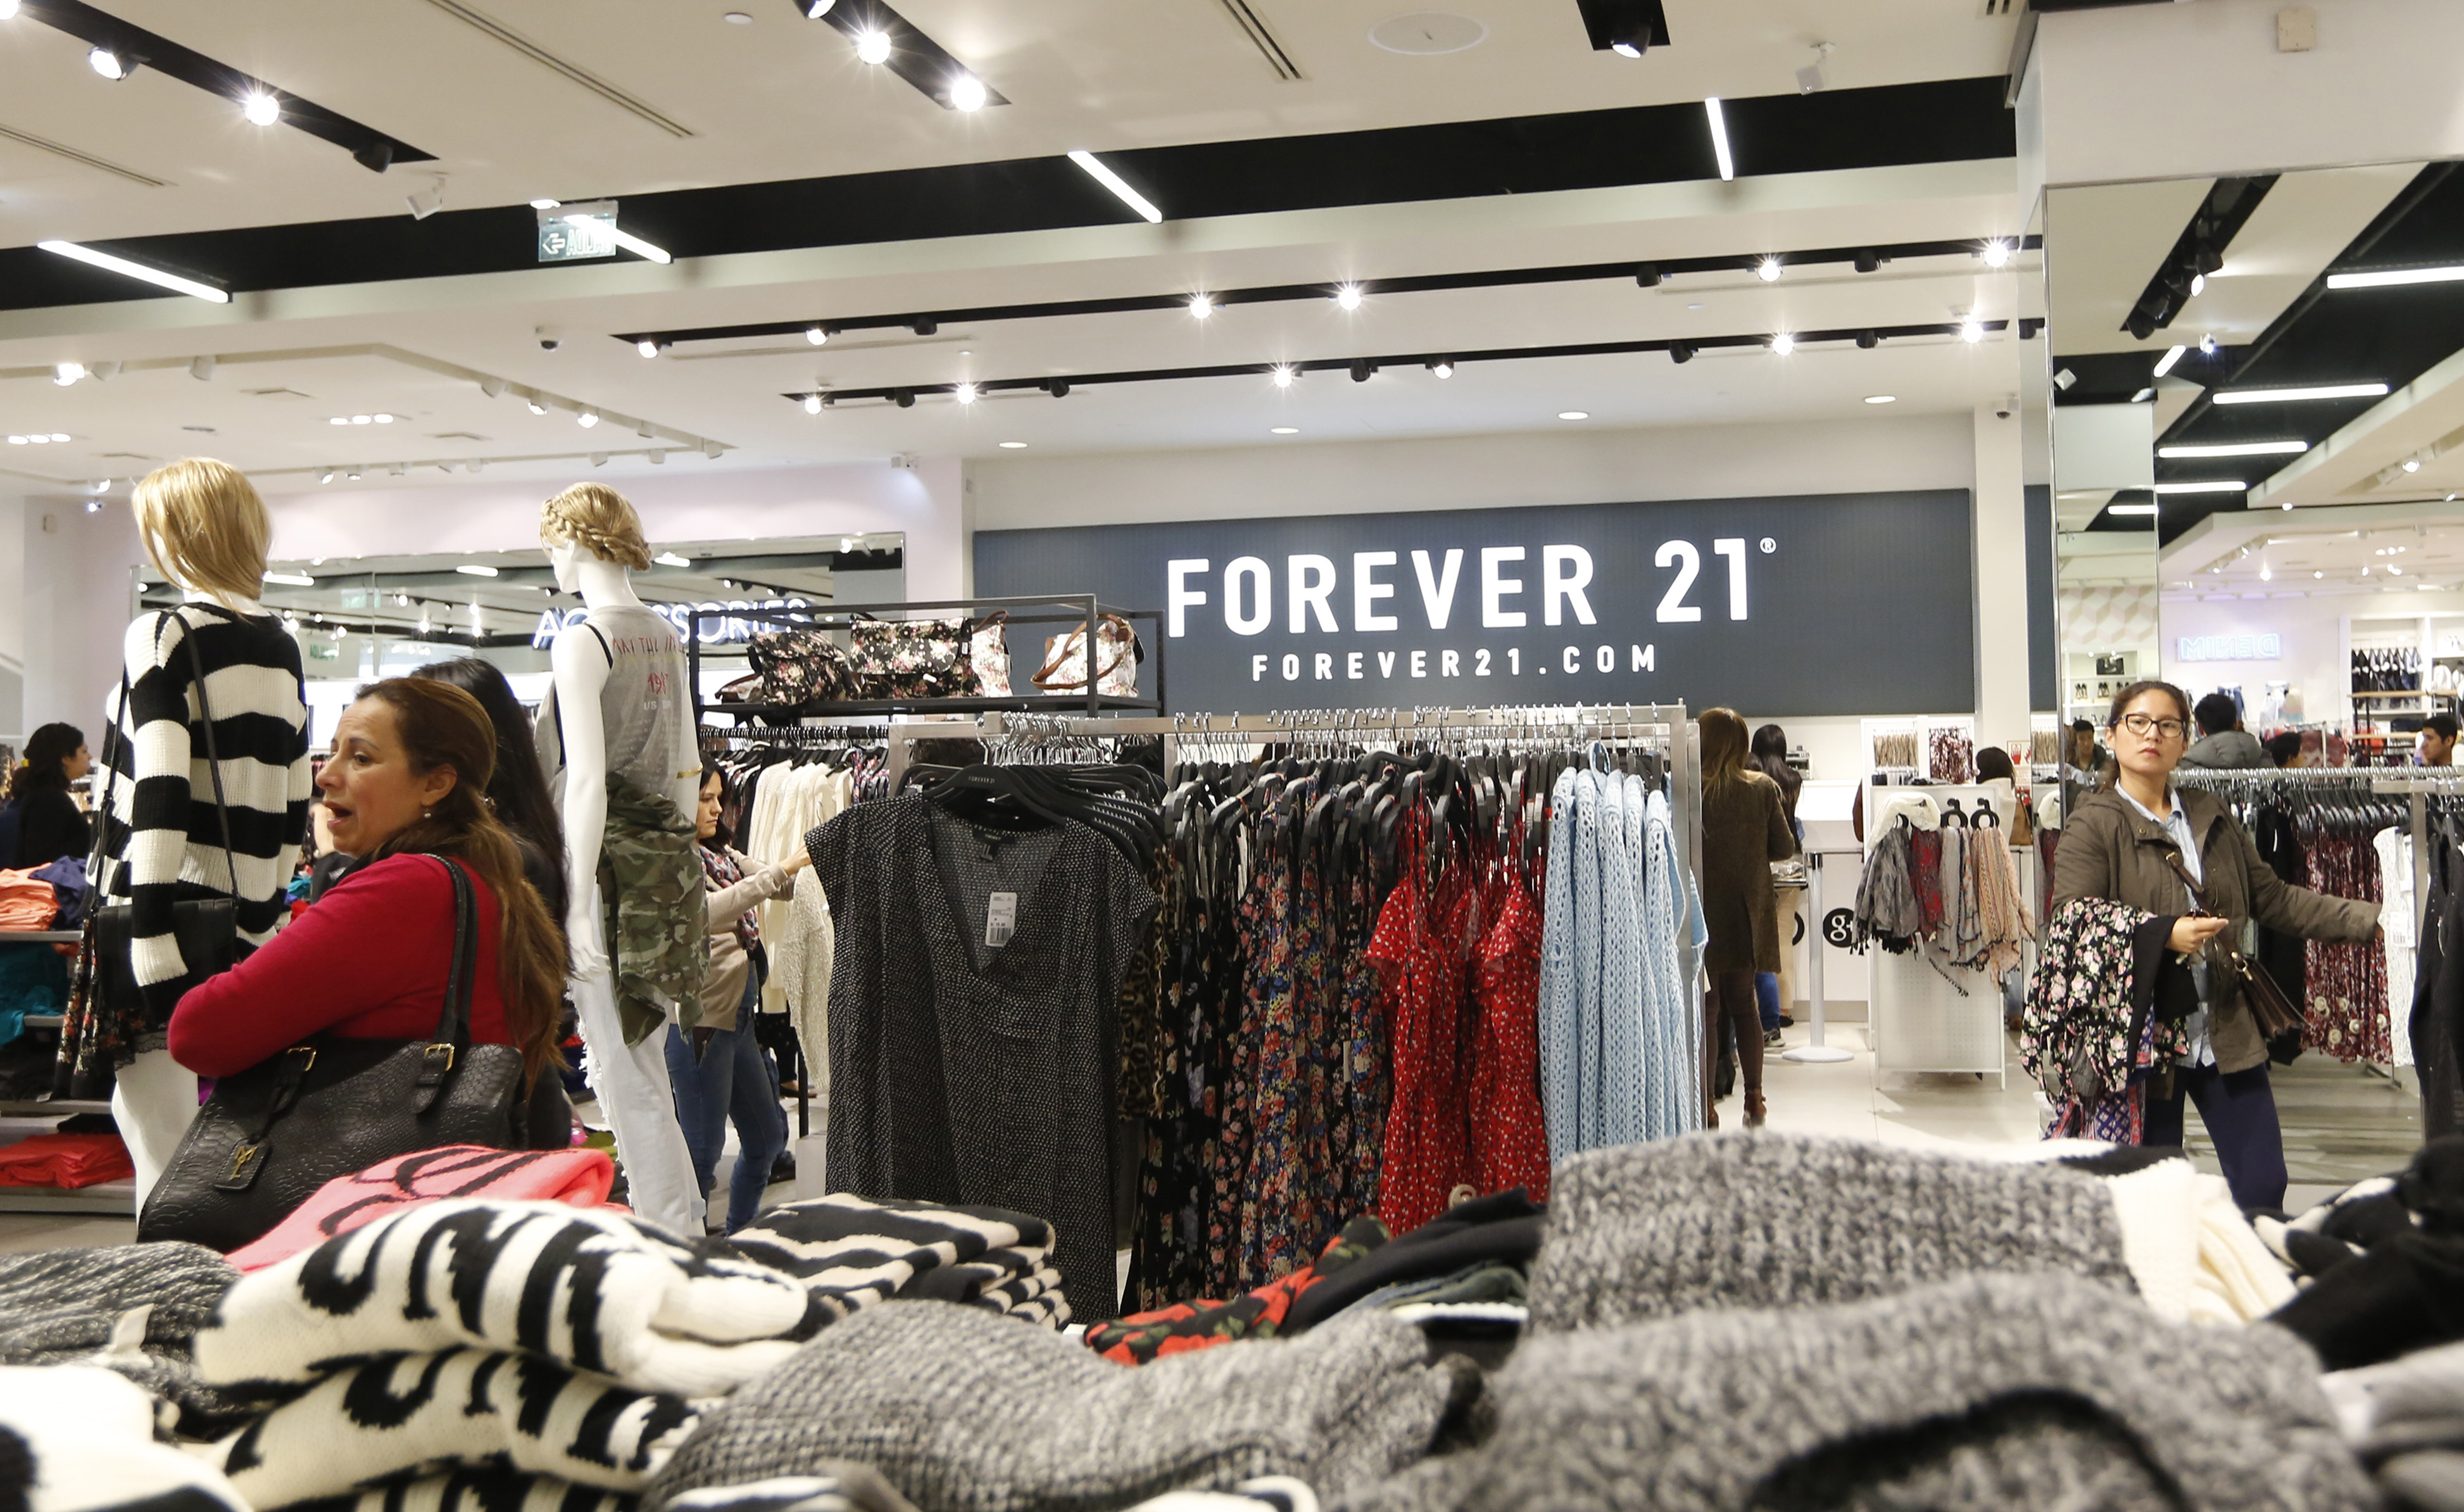 Customers browse through clothes at the first Forever 21 retail store in Lima, at Real Plaza Salaverry shopping mall